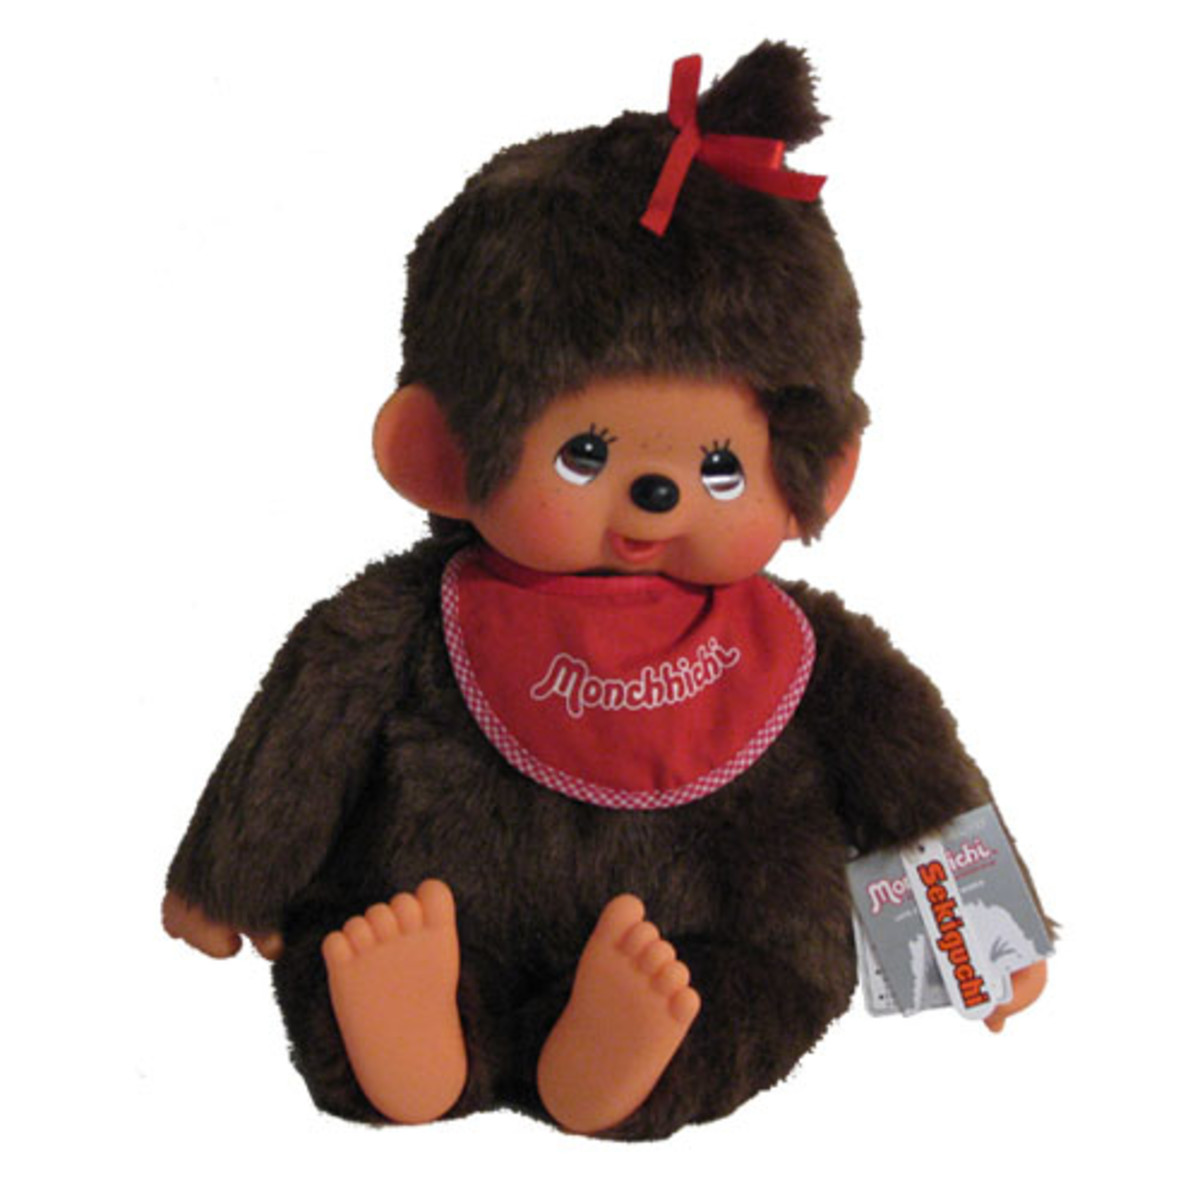 The Monchhichi doll is an 80's fad that will get a big reaction.